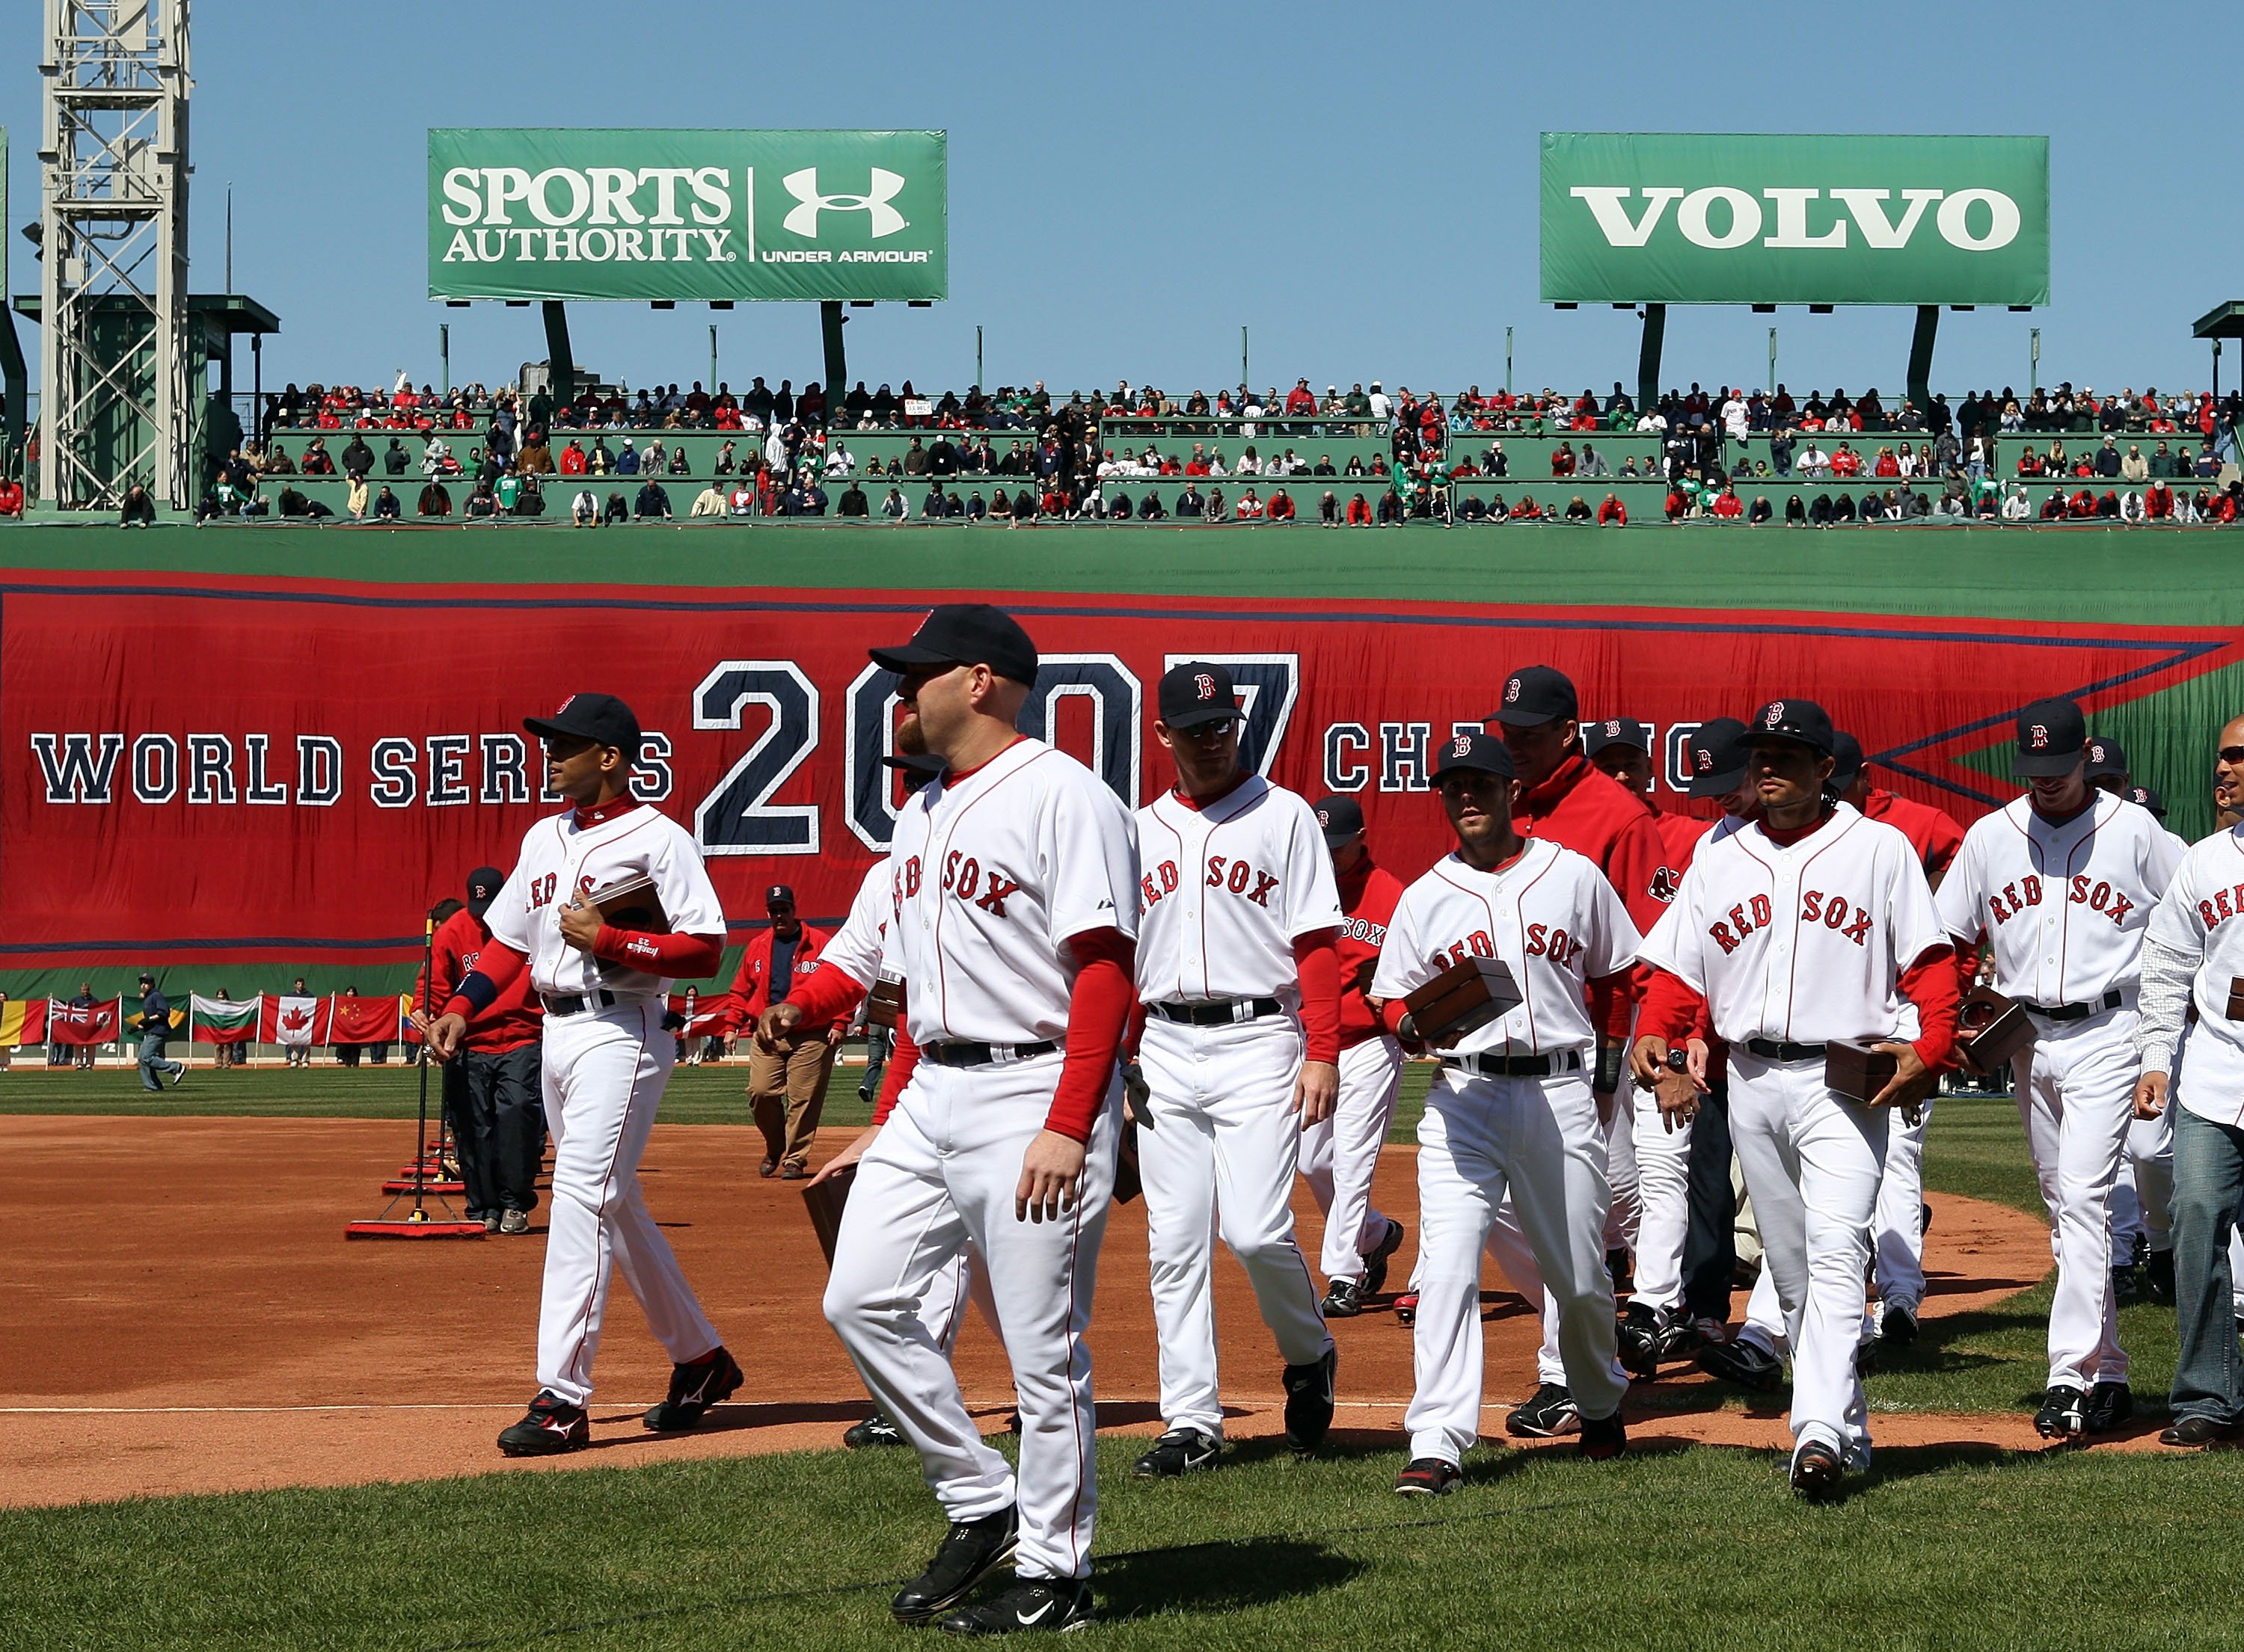 BOSTON - APRIL 08:  The Boston Red Sox  head to the dugout after raising the 2007 World Series banner and carrying their championship rings before the game against the Detroit Tigers on April 8,2008 during Opening Day at Fenway Park in Boston, Massachuset